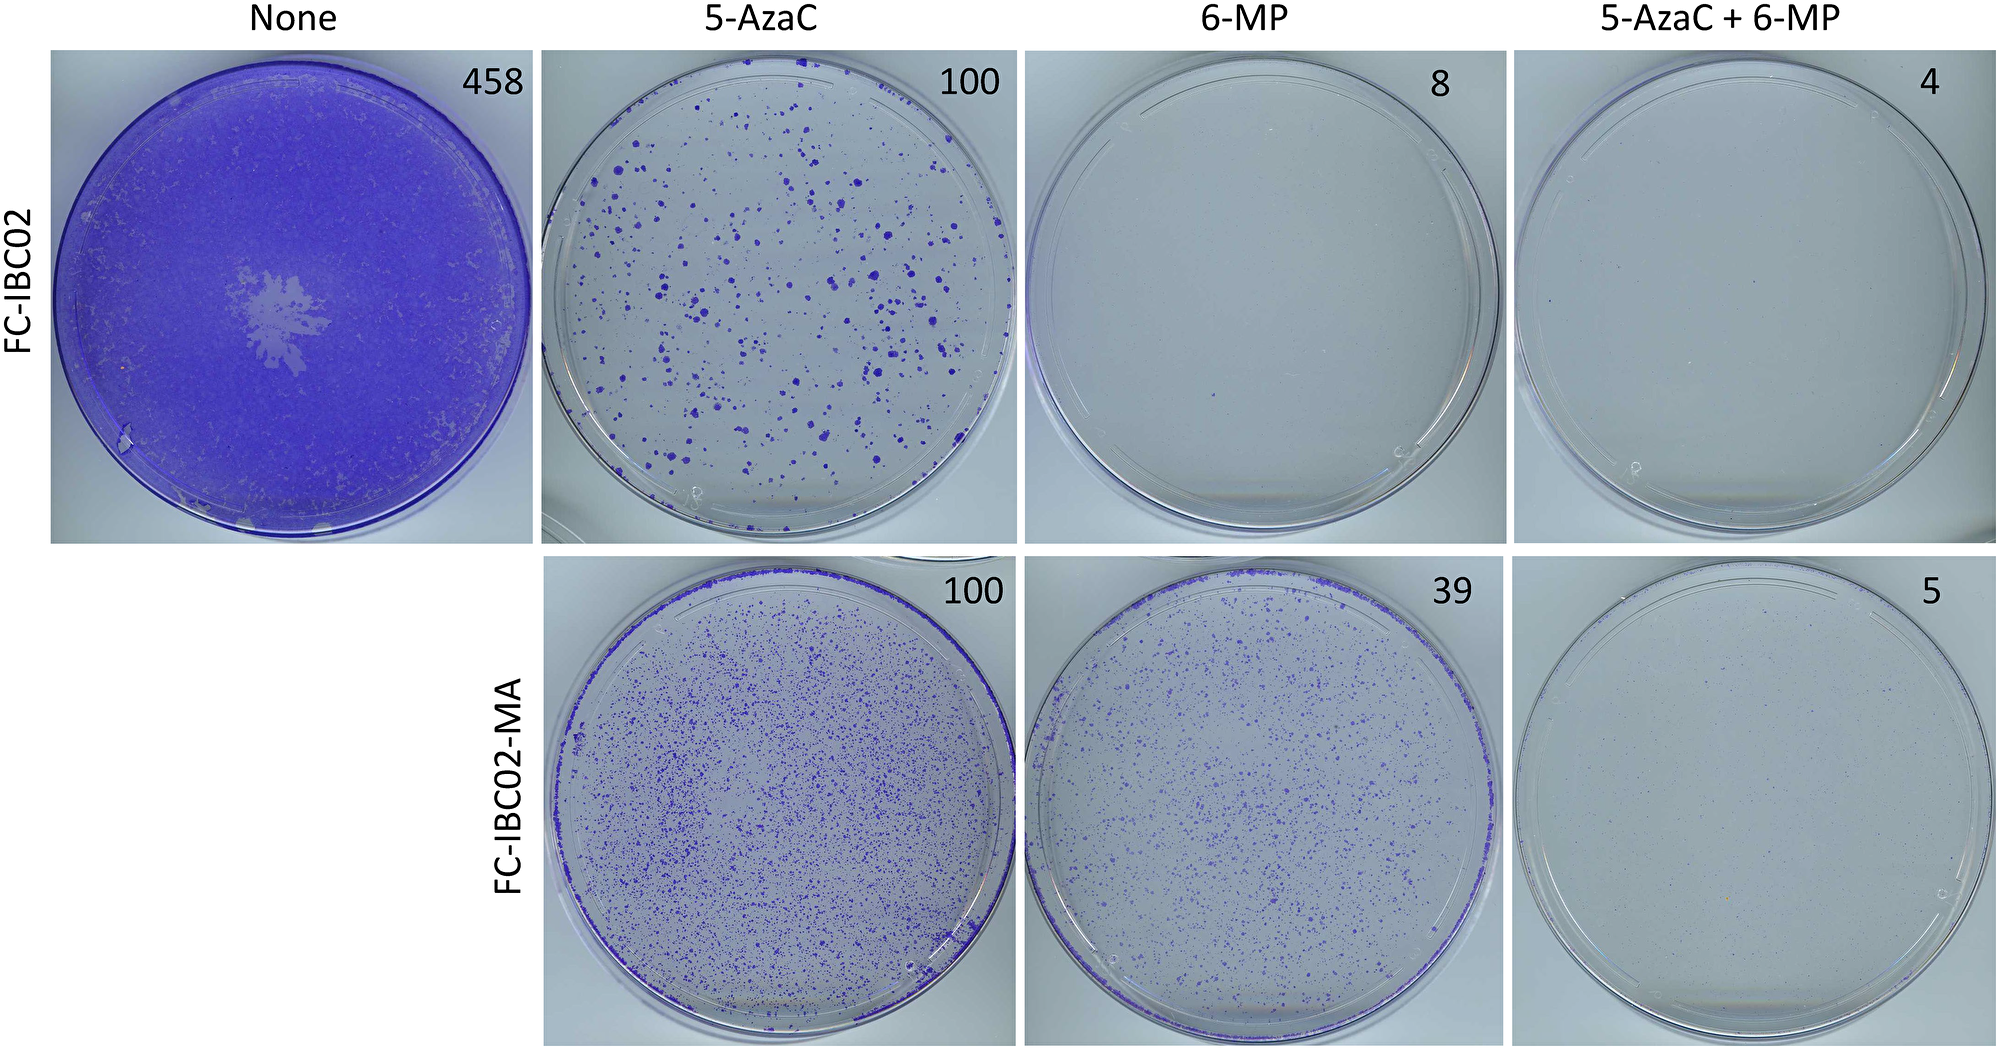 Inhibition of FC-IBC02 and FC-IBC02-MA cells with low-dose 6-MP and 5-AzaC.